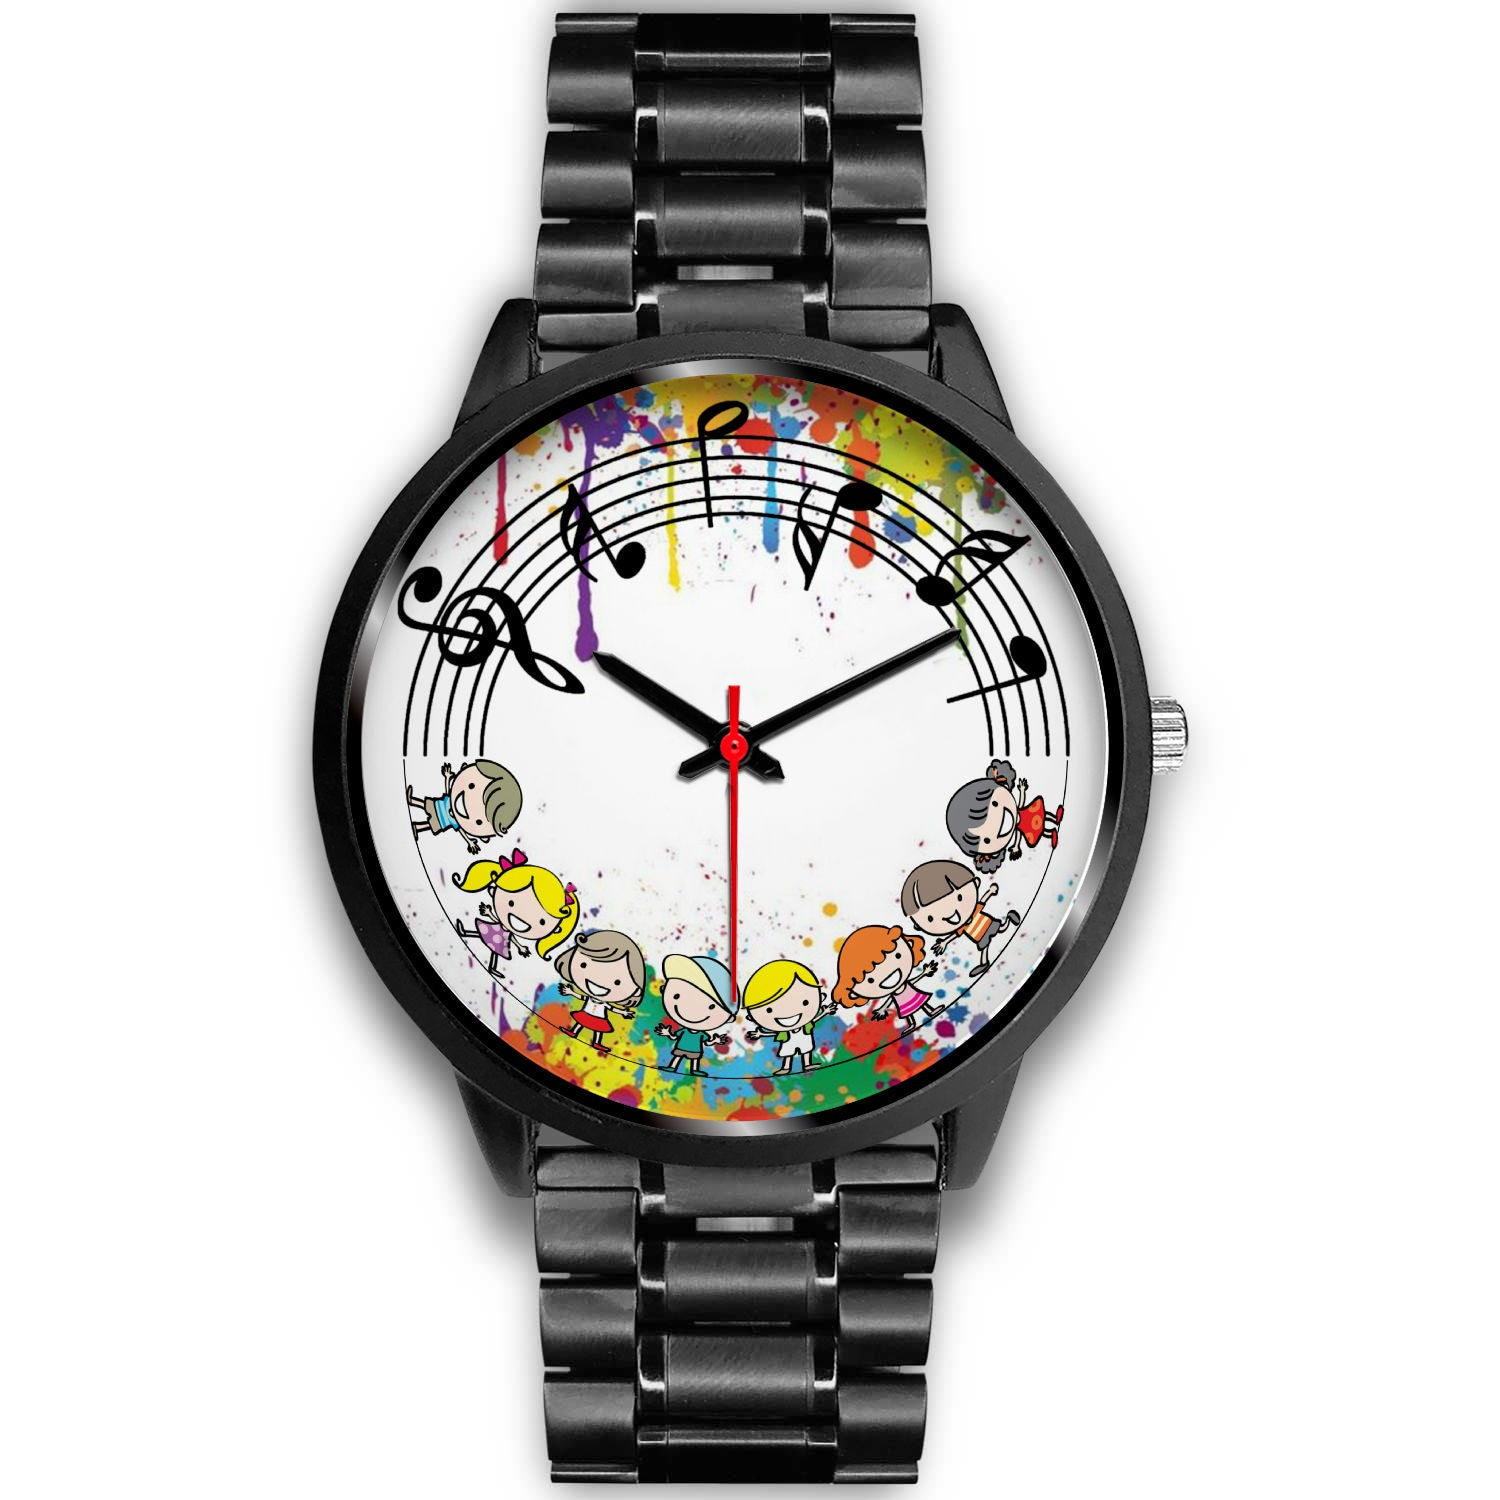 VIRA Music Kids Stainless Steel Watch For Awesome Teachers